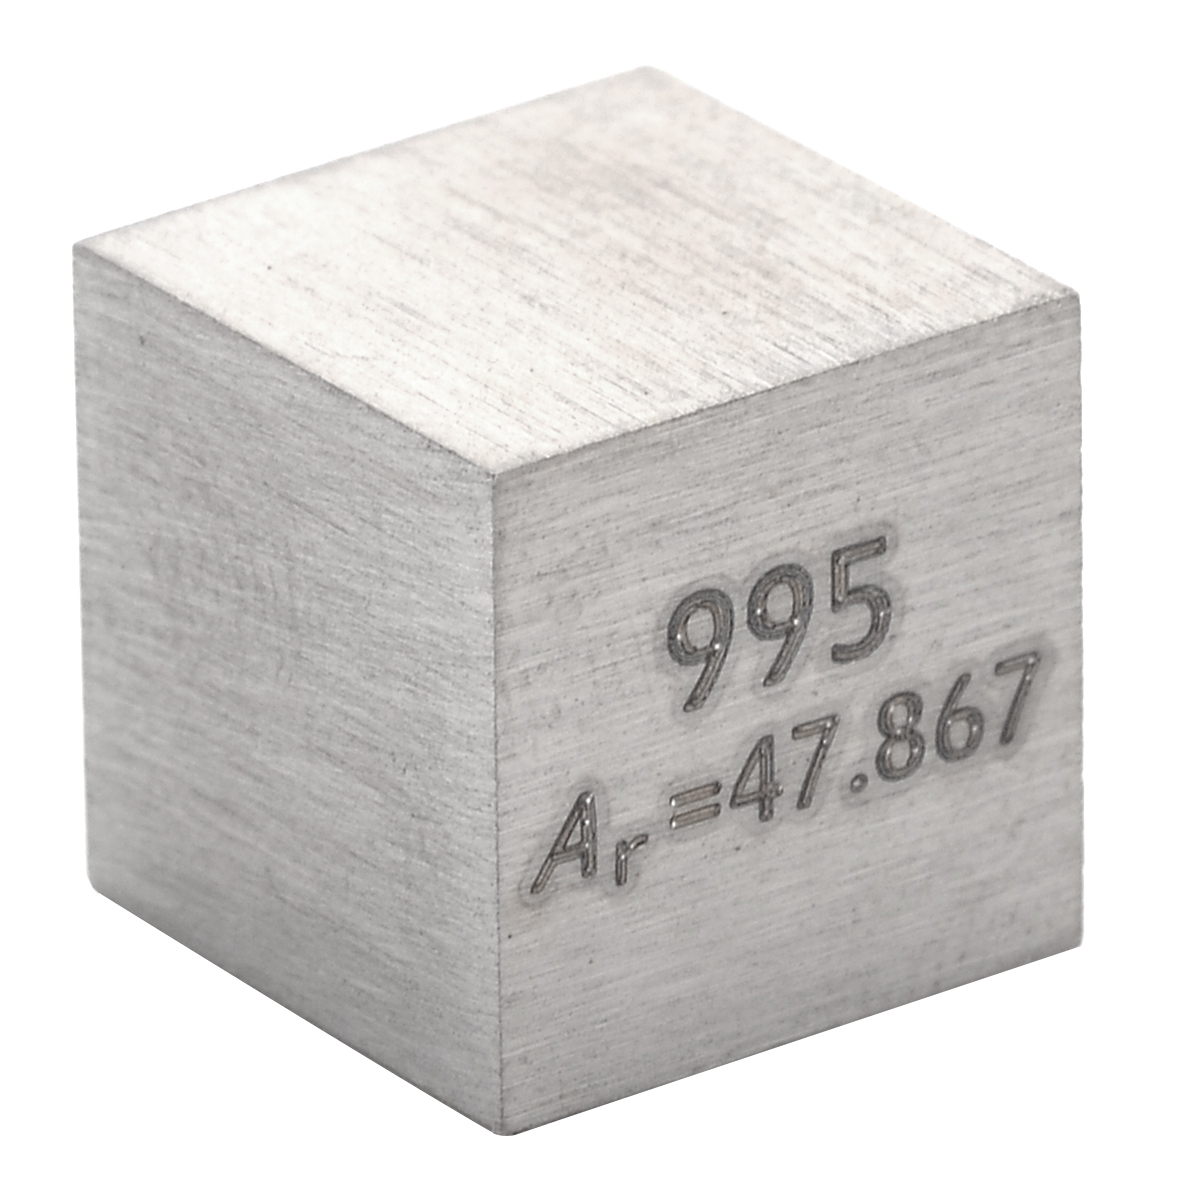 1Pcs 99.5% High Purity Metal Ti Block Pure Titanium Cube 10mm Carved Element Periodic Table Collection For Class Teaching Tools